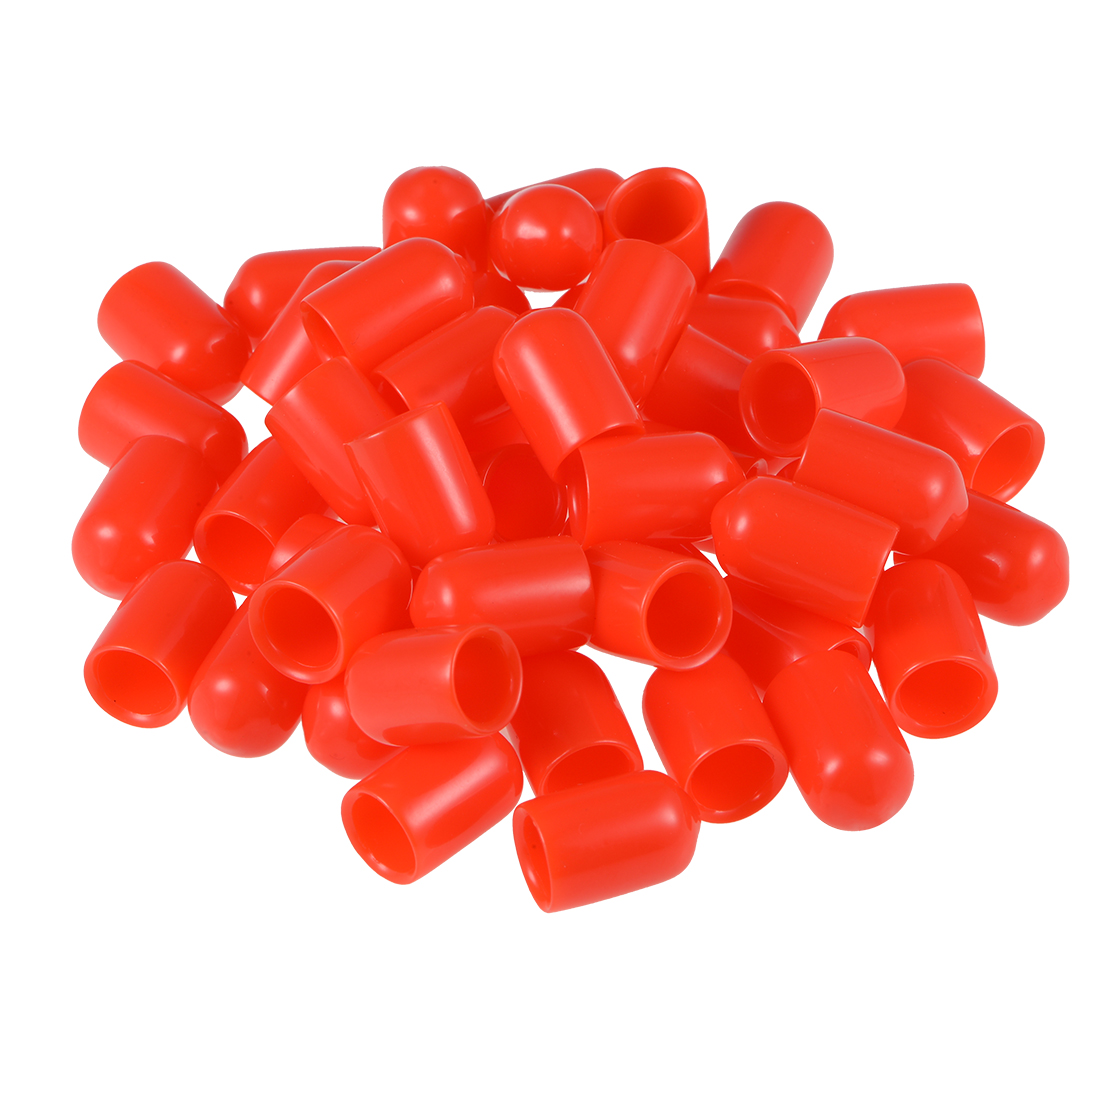 """Screw Thread Protectors, 5/16"""" ID 15mm Length Round End Cap Cover Red 50pcs"""